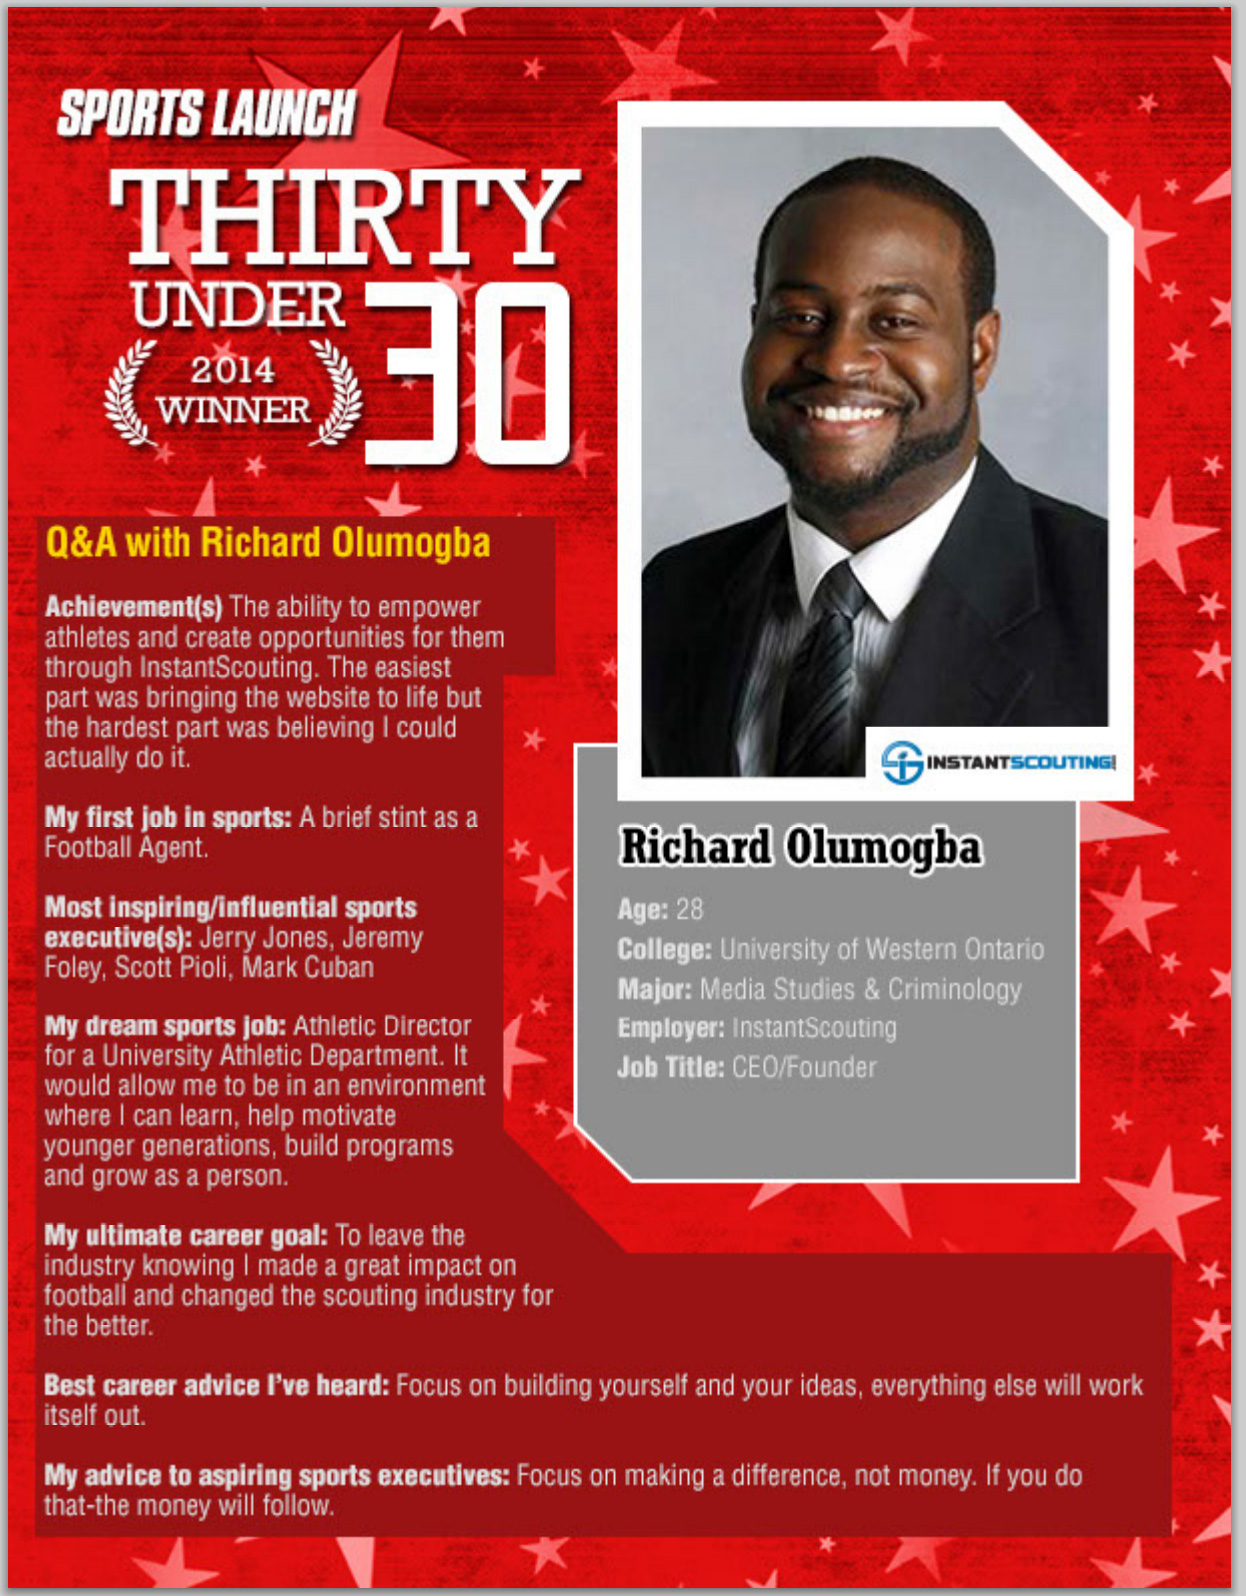 Sports Launch Magazine 30 under 30 Richard Olumogba 2014 winner